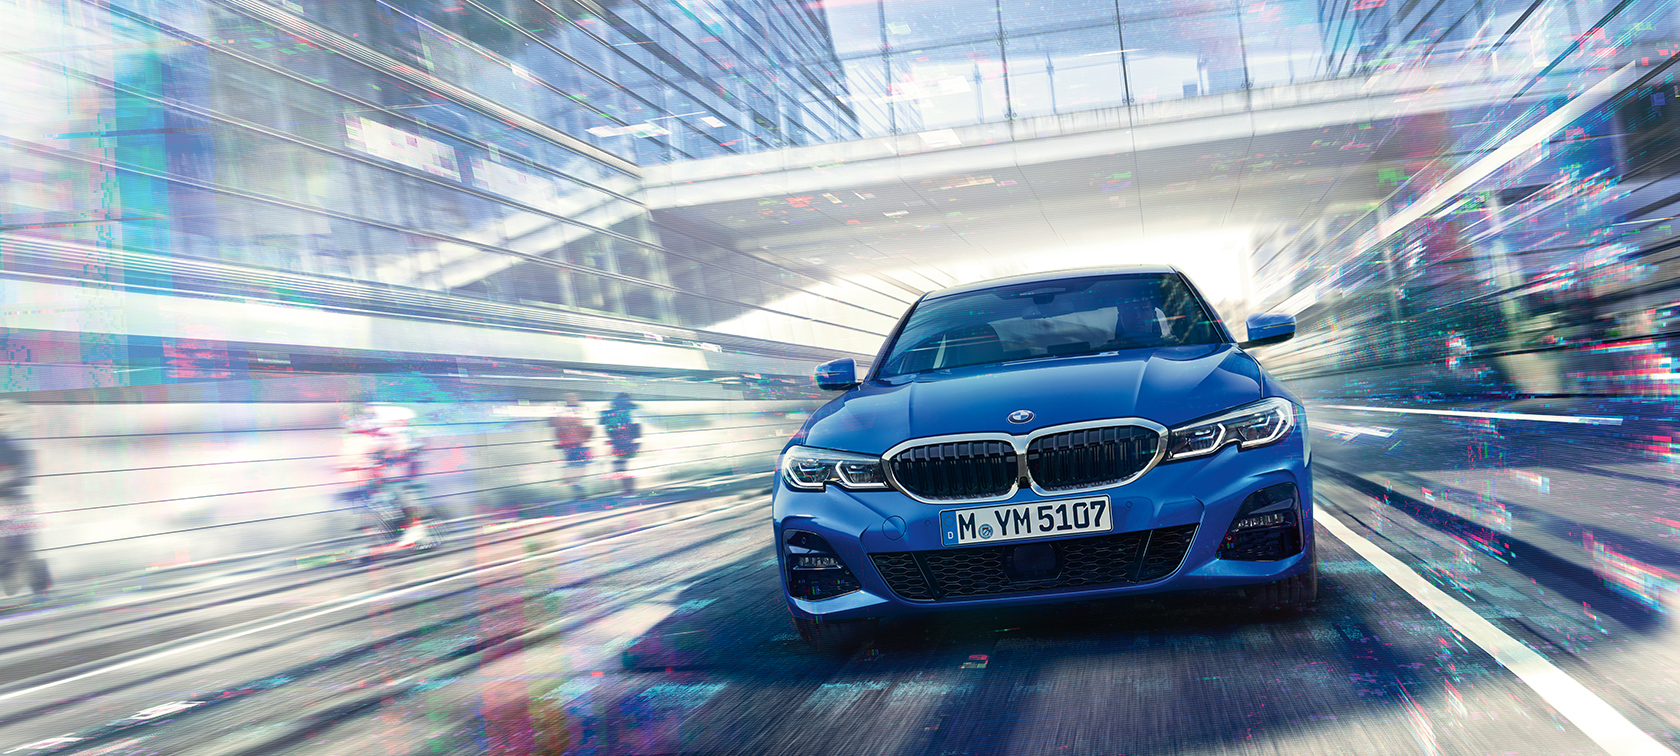 Front view of driving BMW 3 Series Sedan by day under glass building.